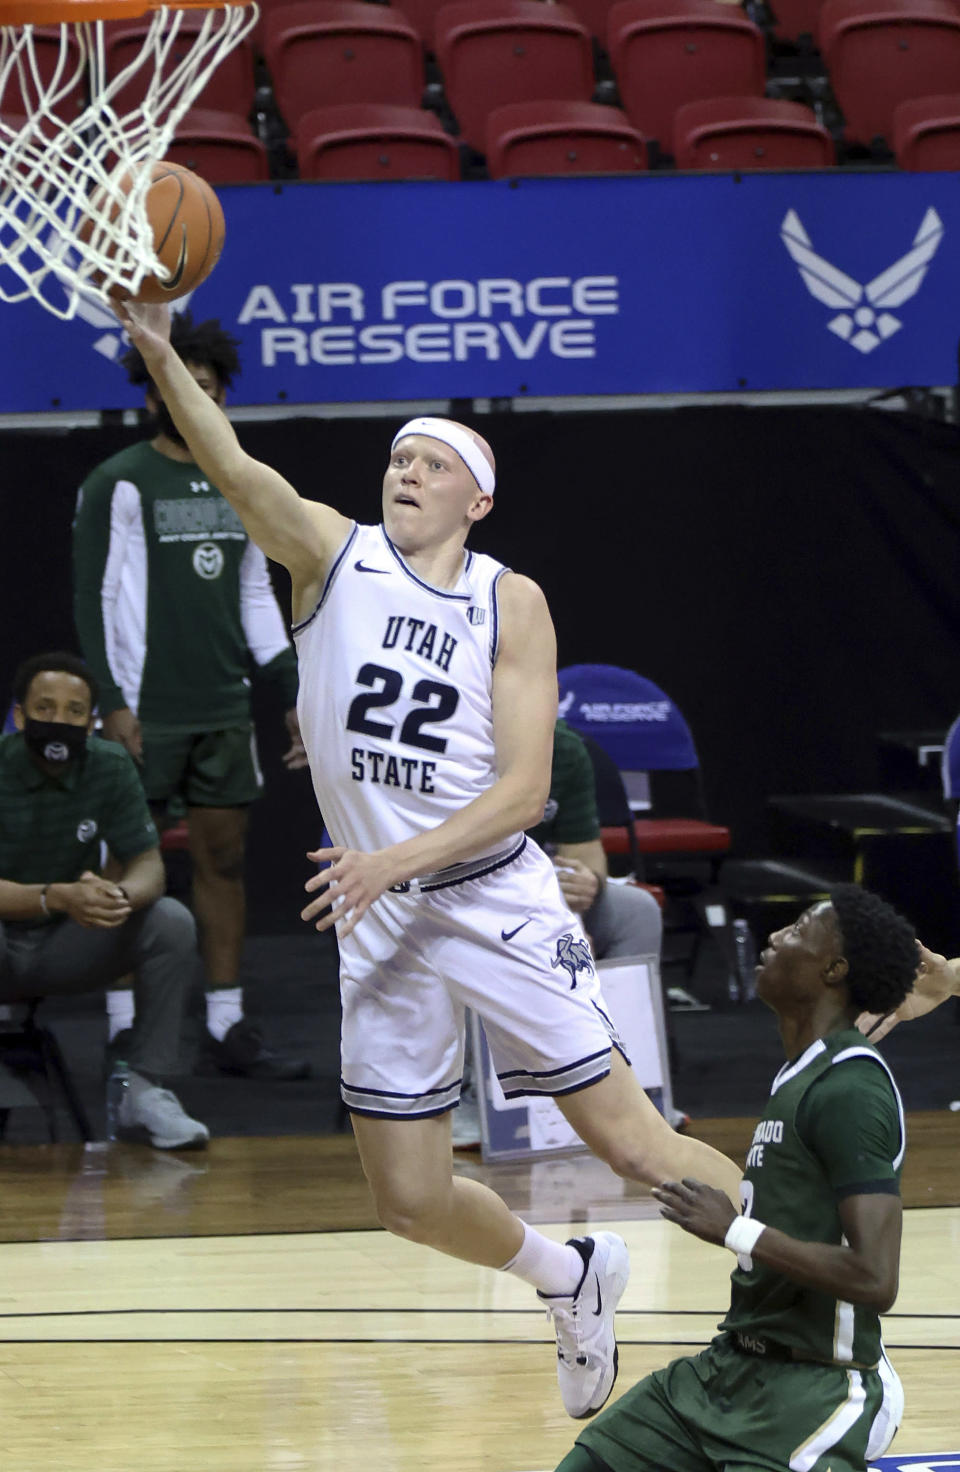 Utah State guard Brock Miller (22) shoots as Colorado State guard Kendle Moore (3) defends during the first half of an NCAA college basketball game in the semifinals of the Mountain West Conference men's tournament Friday, March 12, 2021, in Las Vegas. (AP Photo/Isaac Brekken)